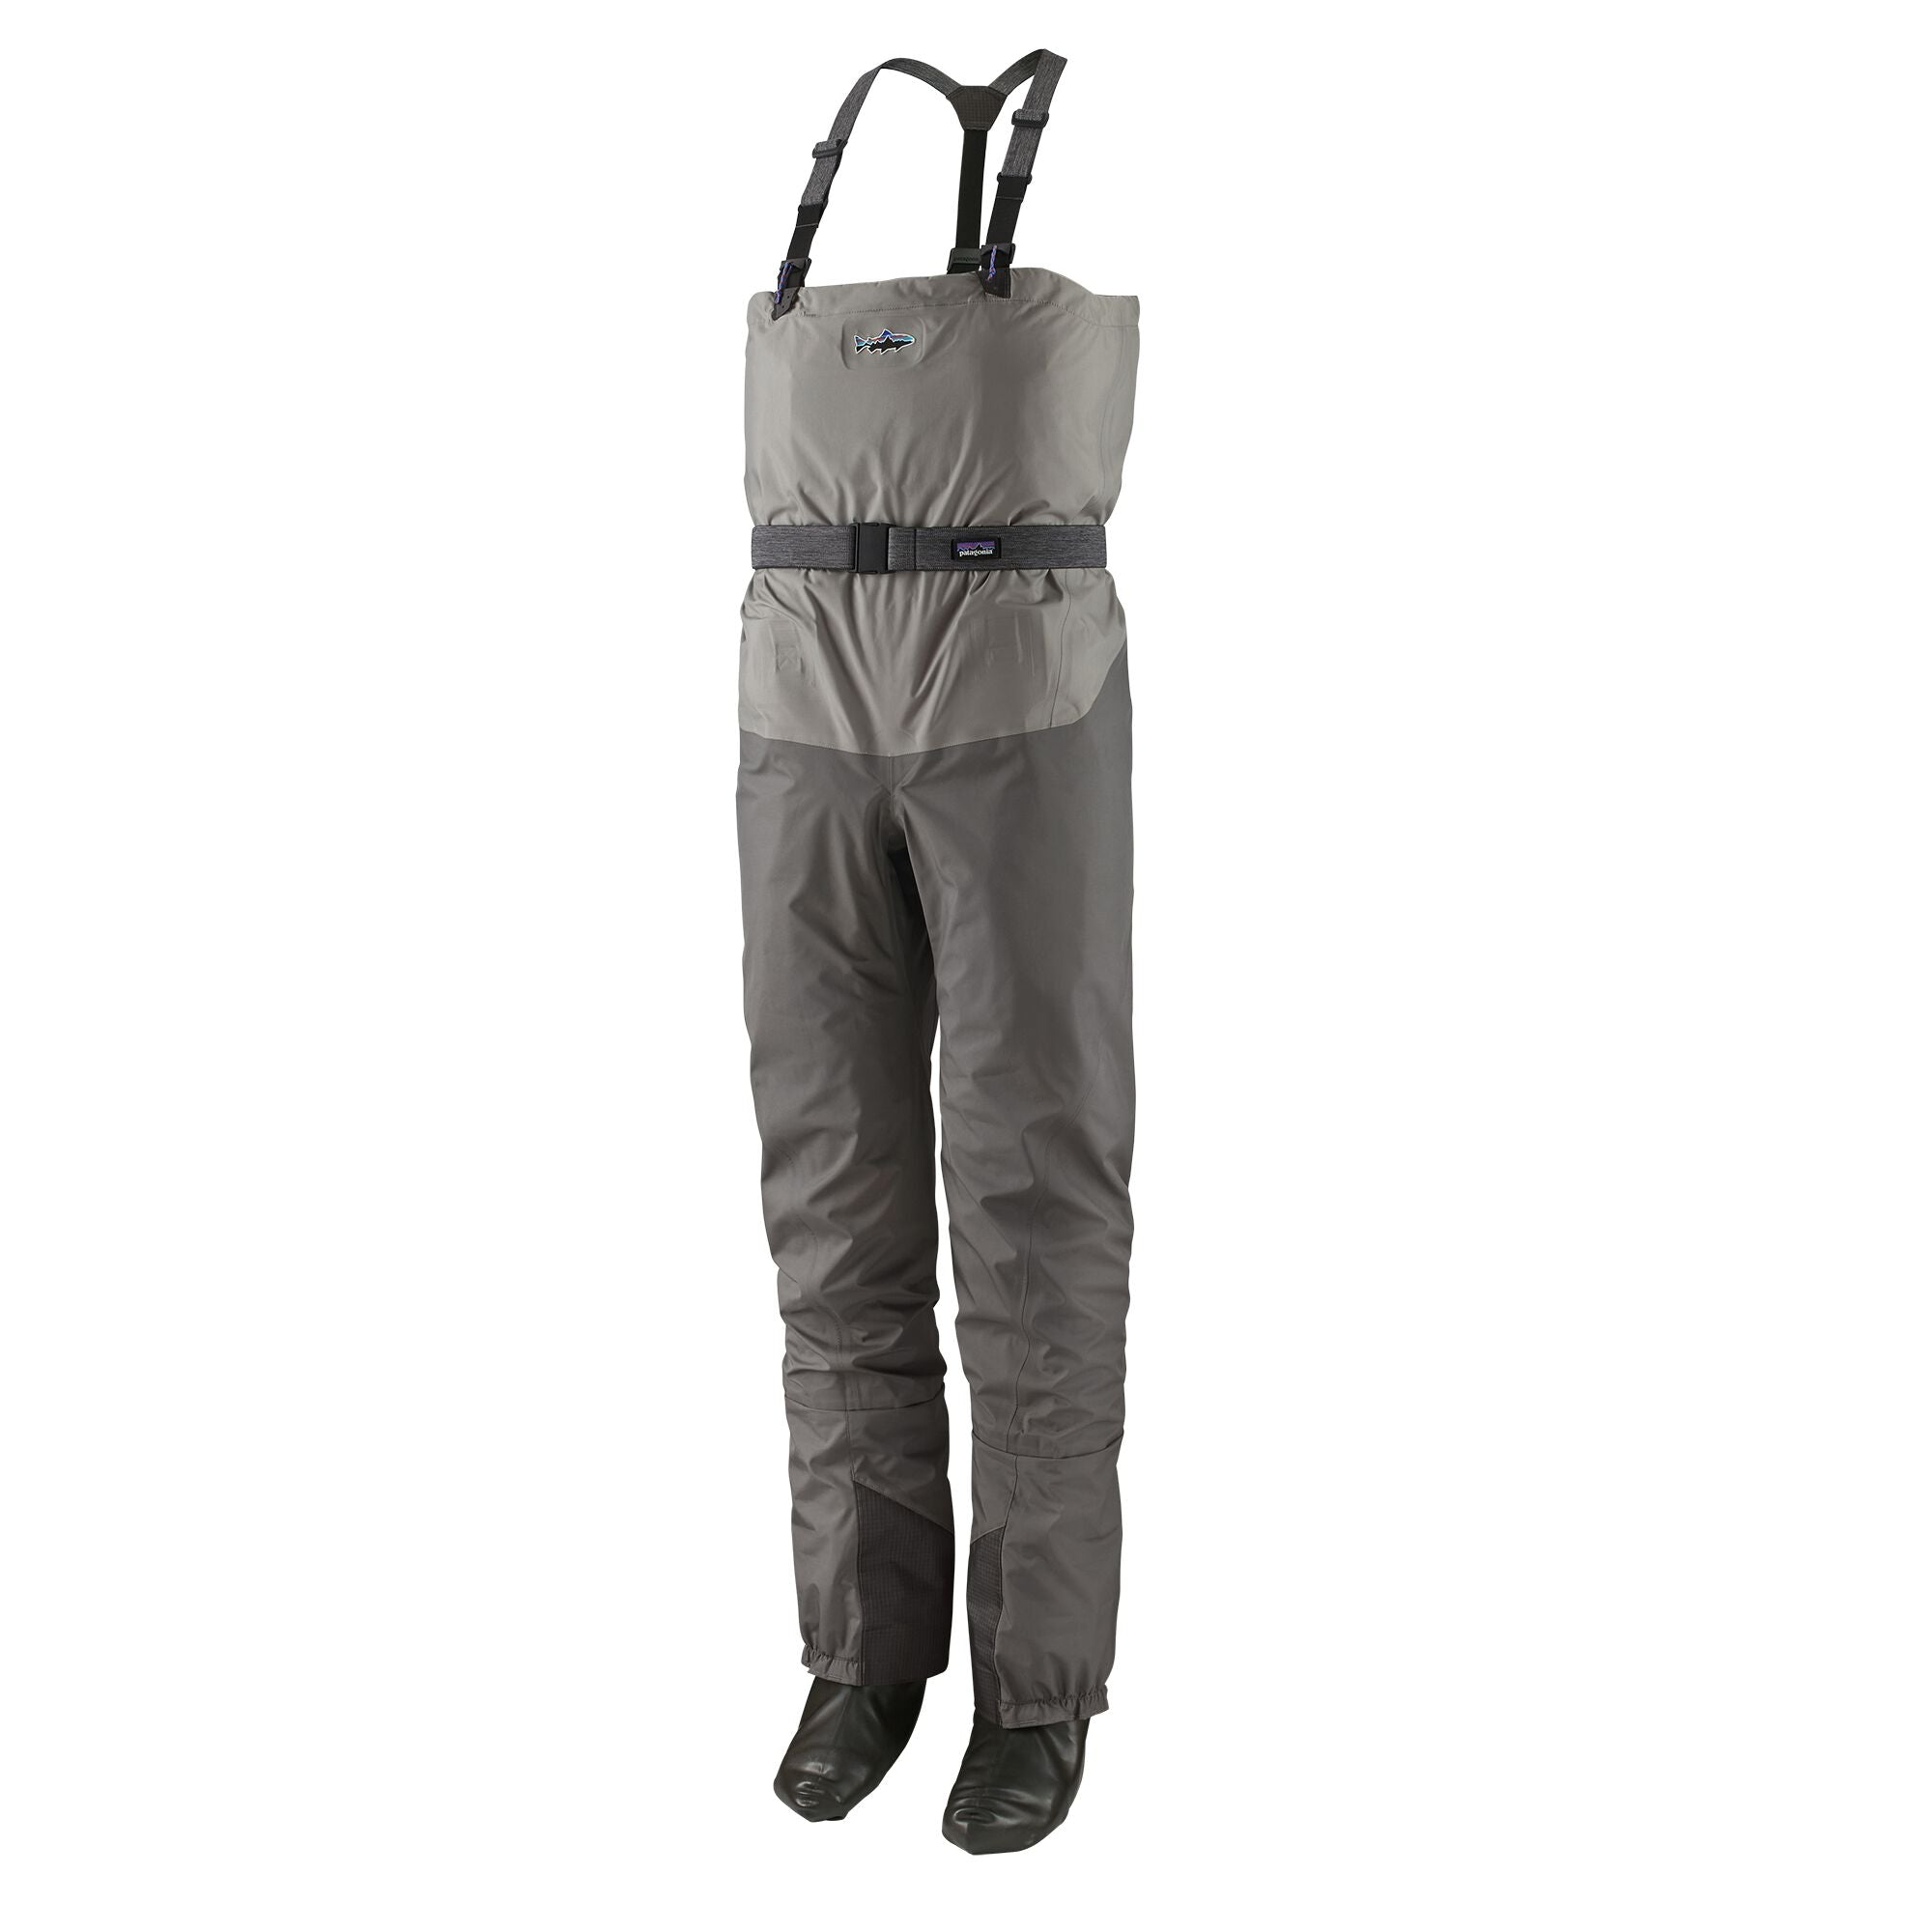 Traje de Pesca Middle Fork Packable Waders - Regular Gris Patagonia